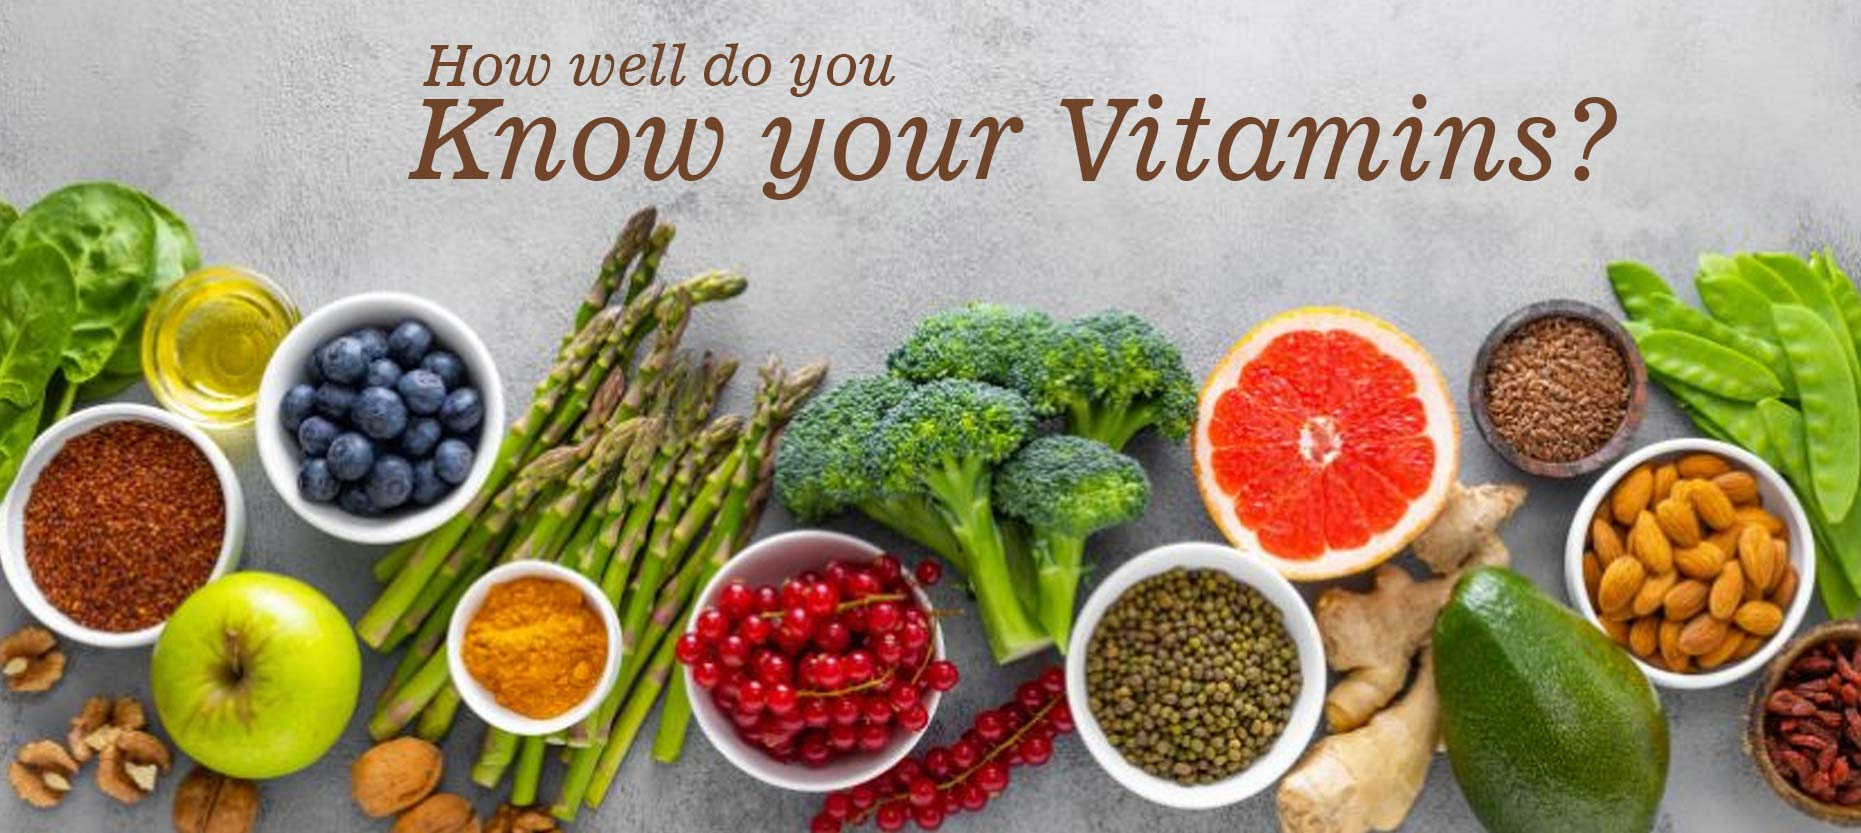 Know your Vitamins?